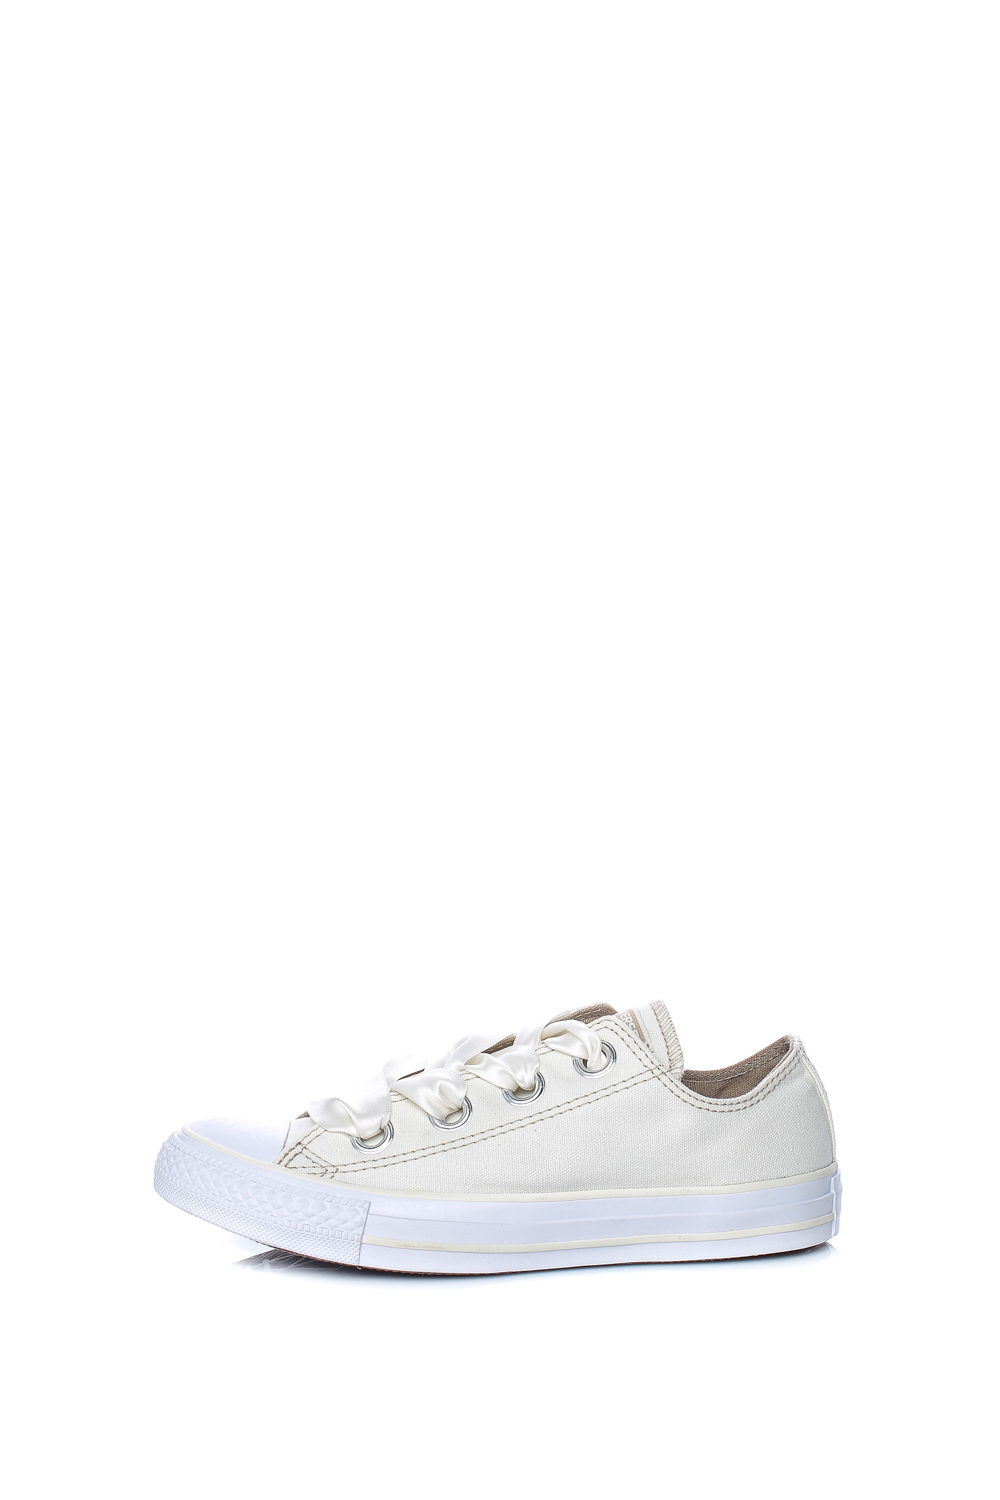 CTAS BIG EYELETS PASTEL CANVAS OX WHITE